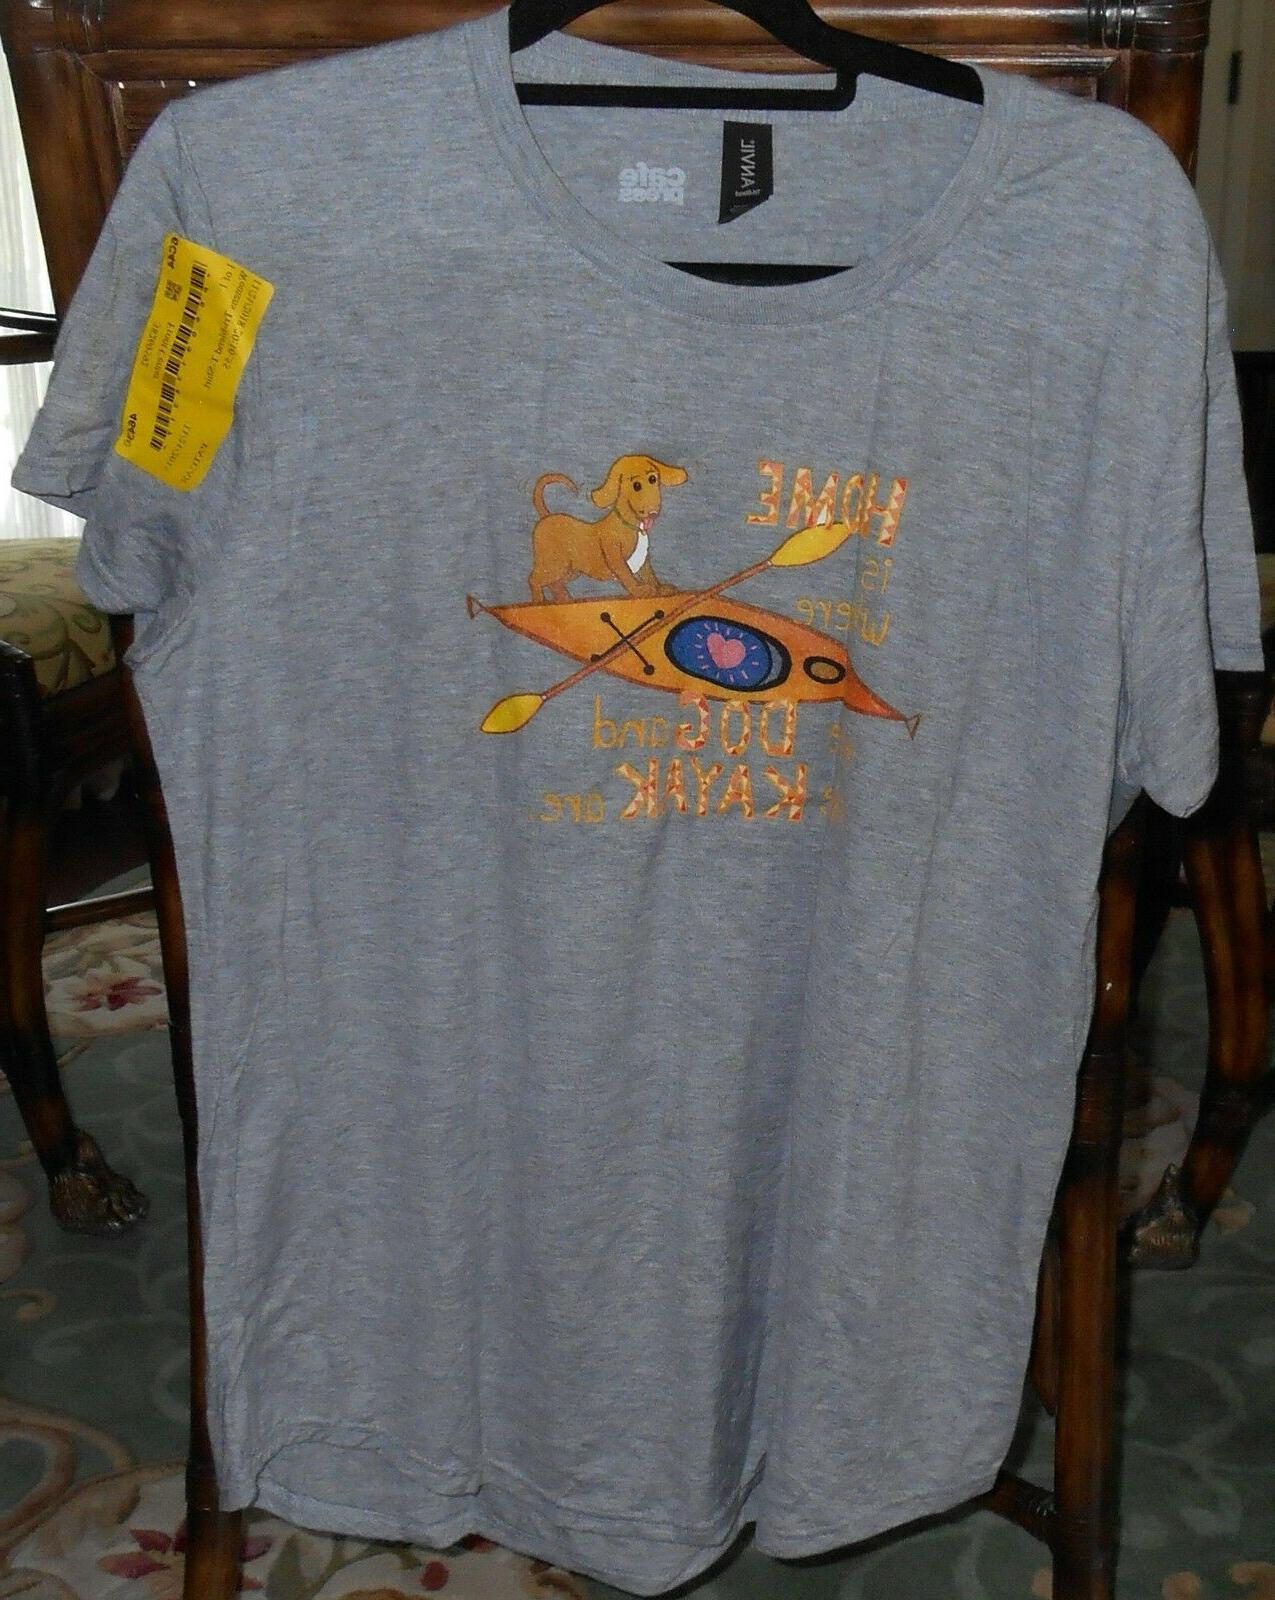 Where Kayak - Home Is where T-Shirt size large